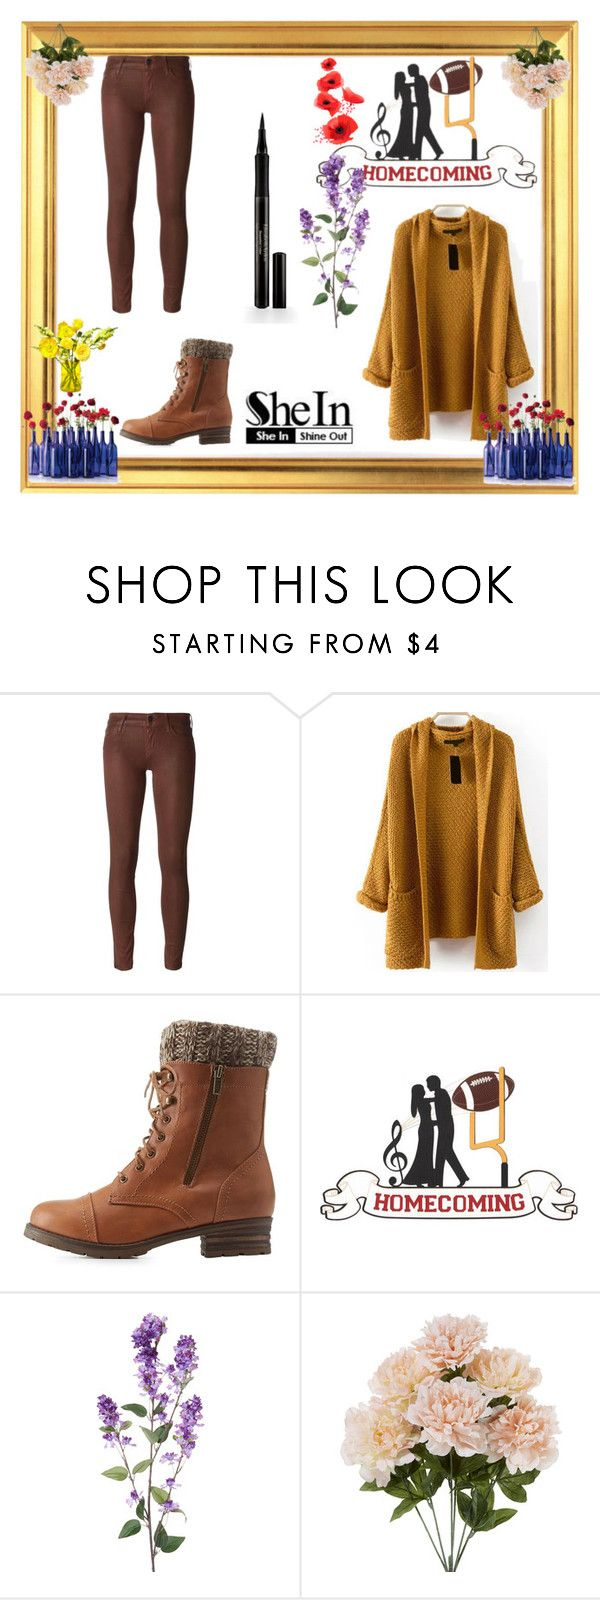 """""""Shein"""" by fabia-bianchi ❤ liked on Polyvore featuring Koral, Charlotte Russe, Elizabeth Arden, kimono and shein"""